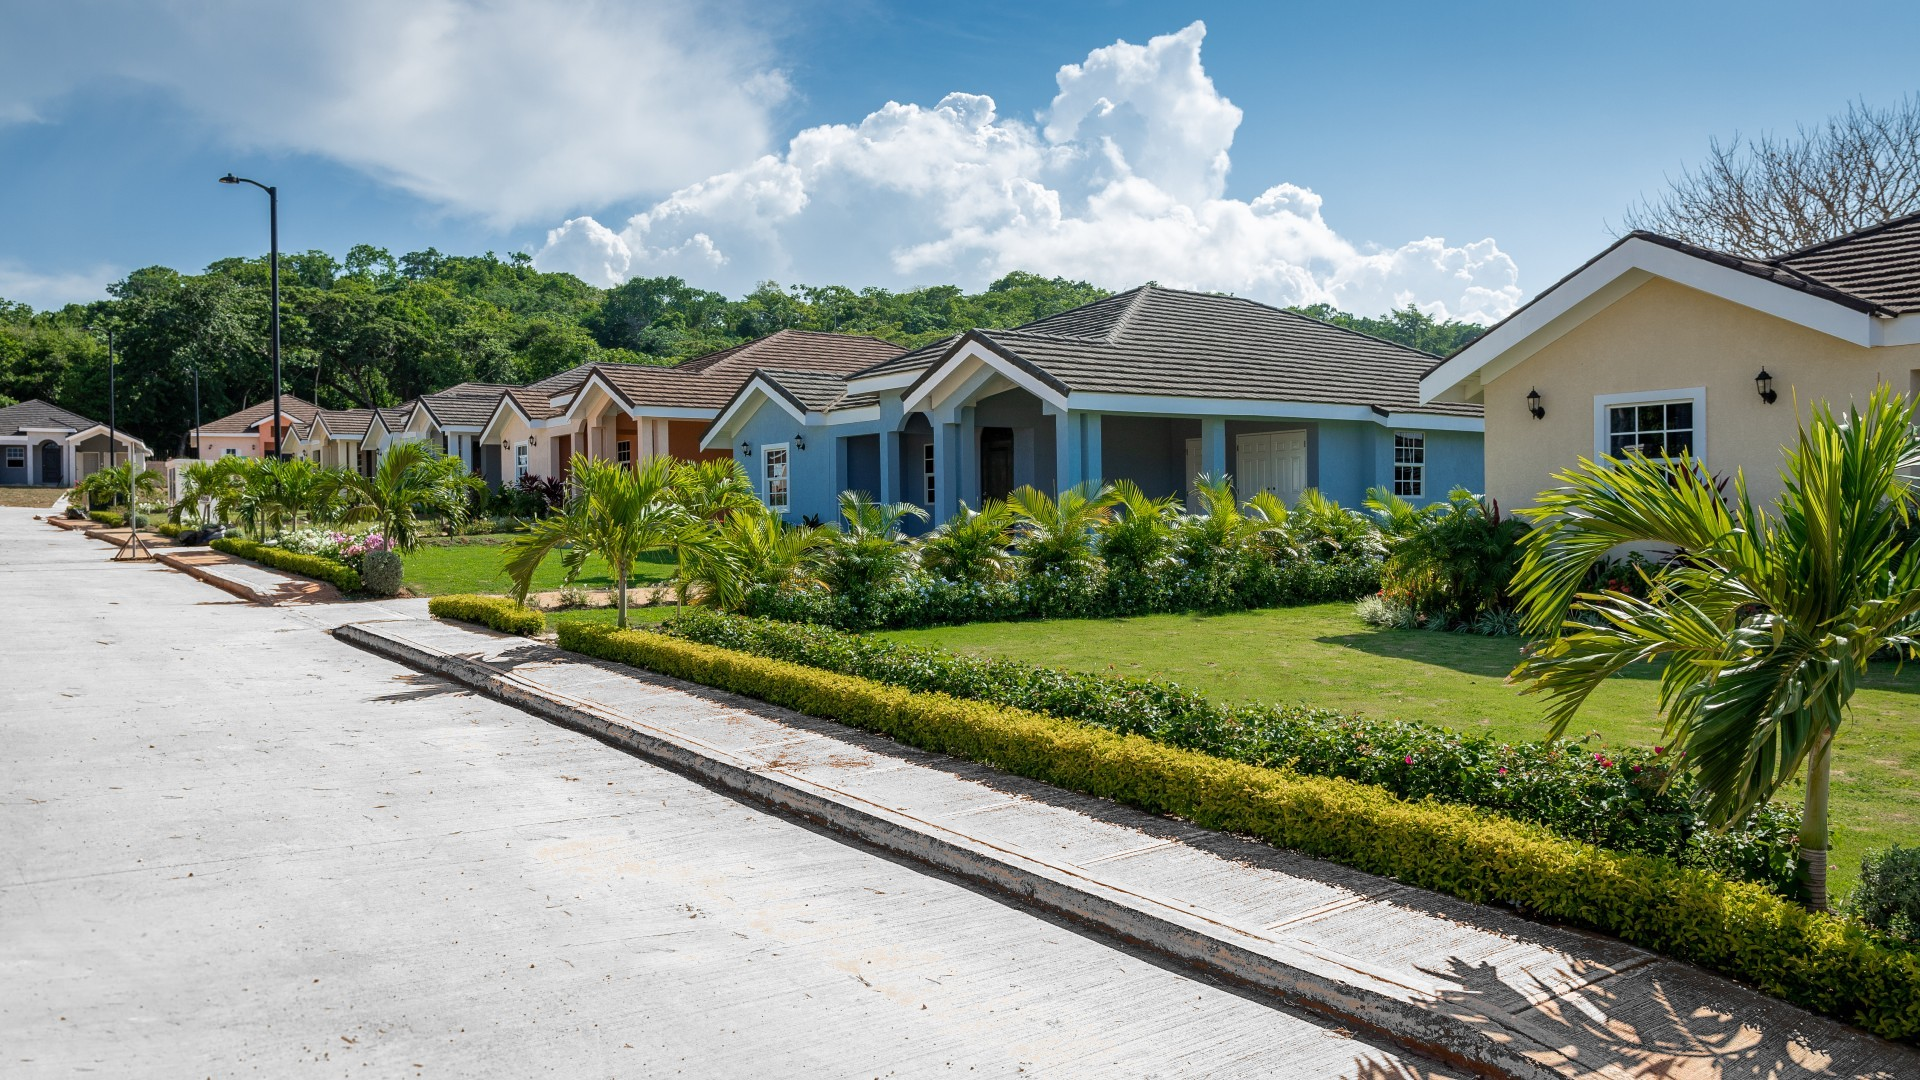 New Homes For Sale in Jamaica